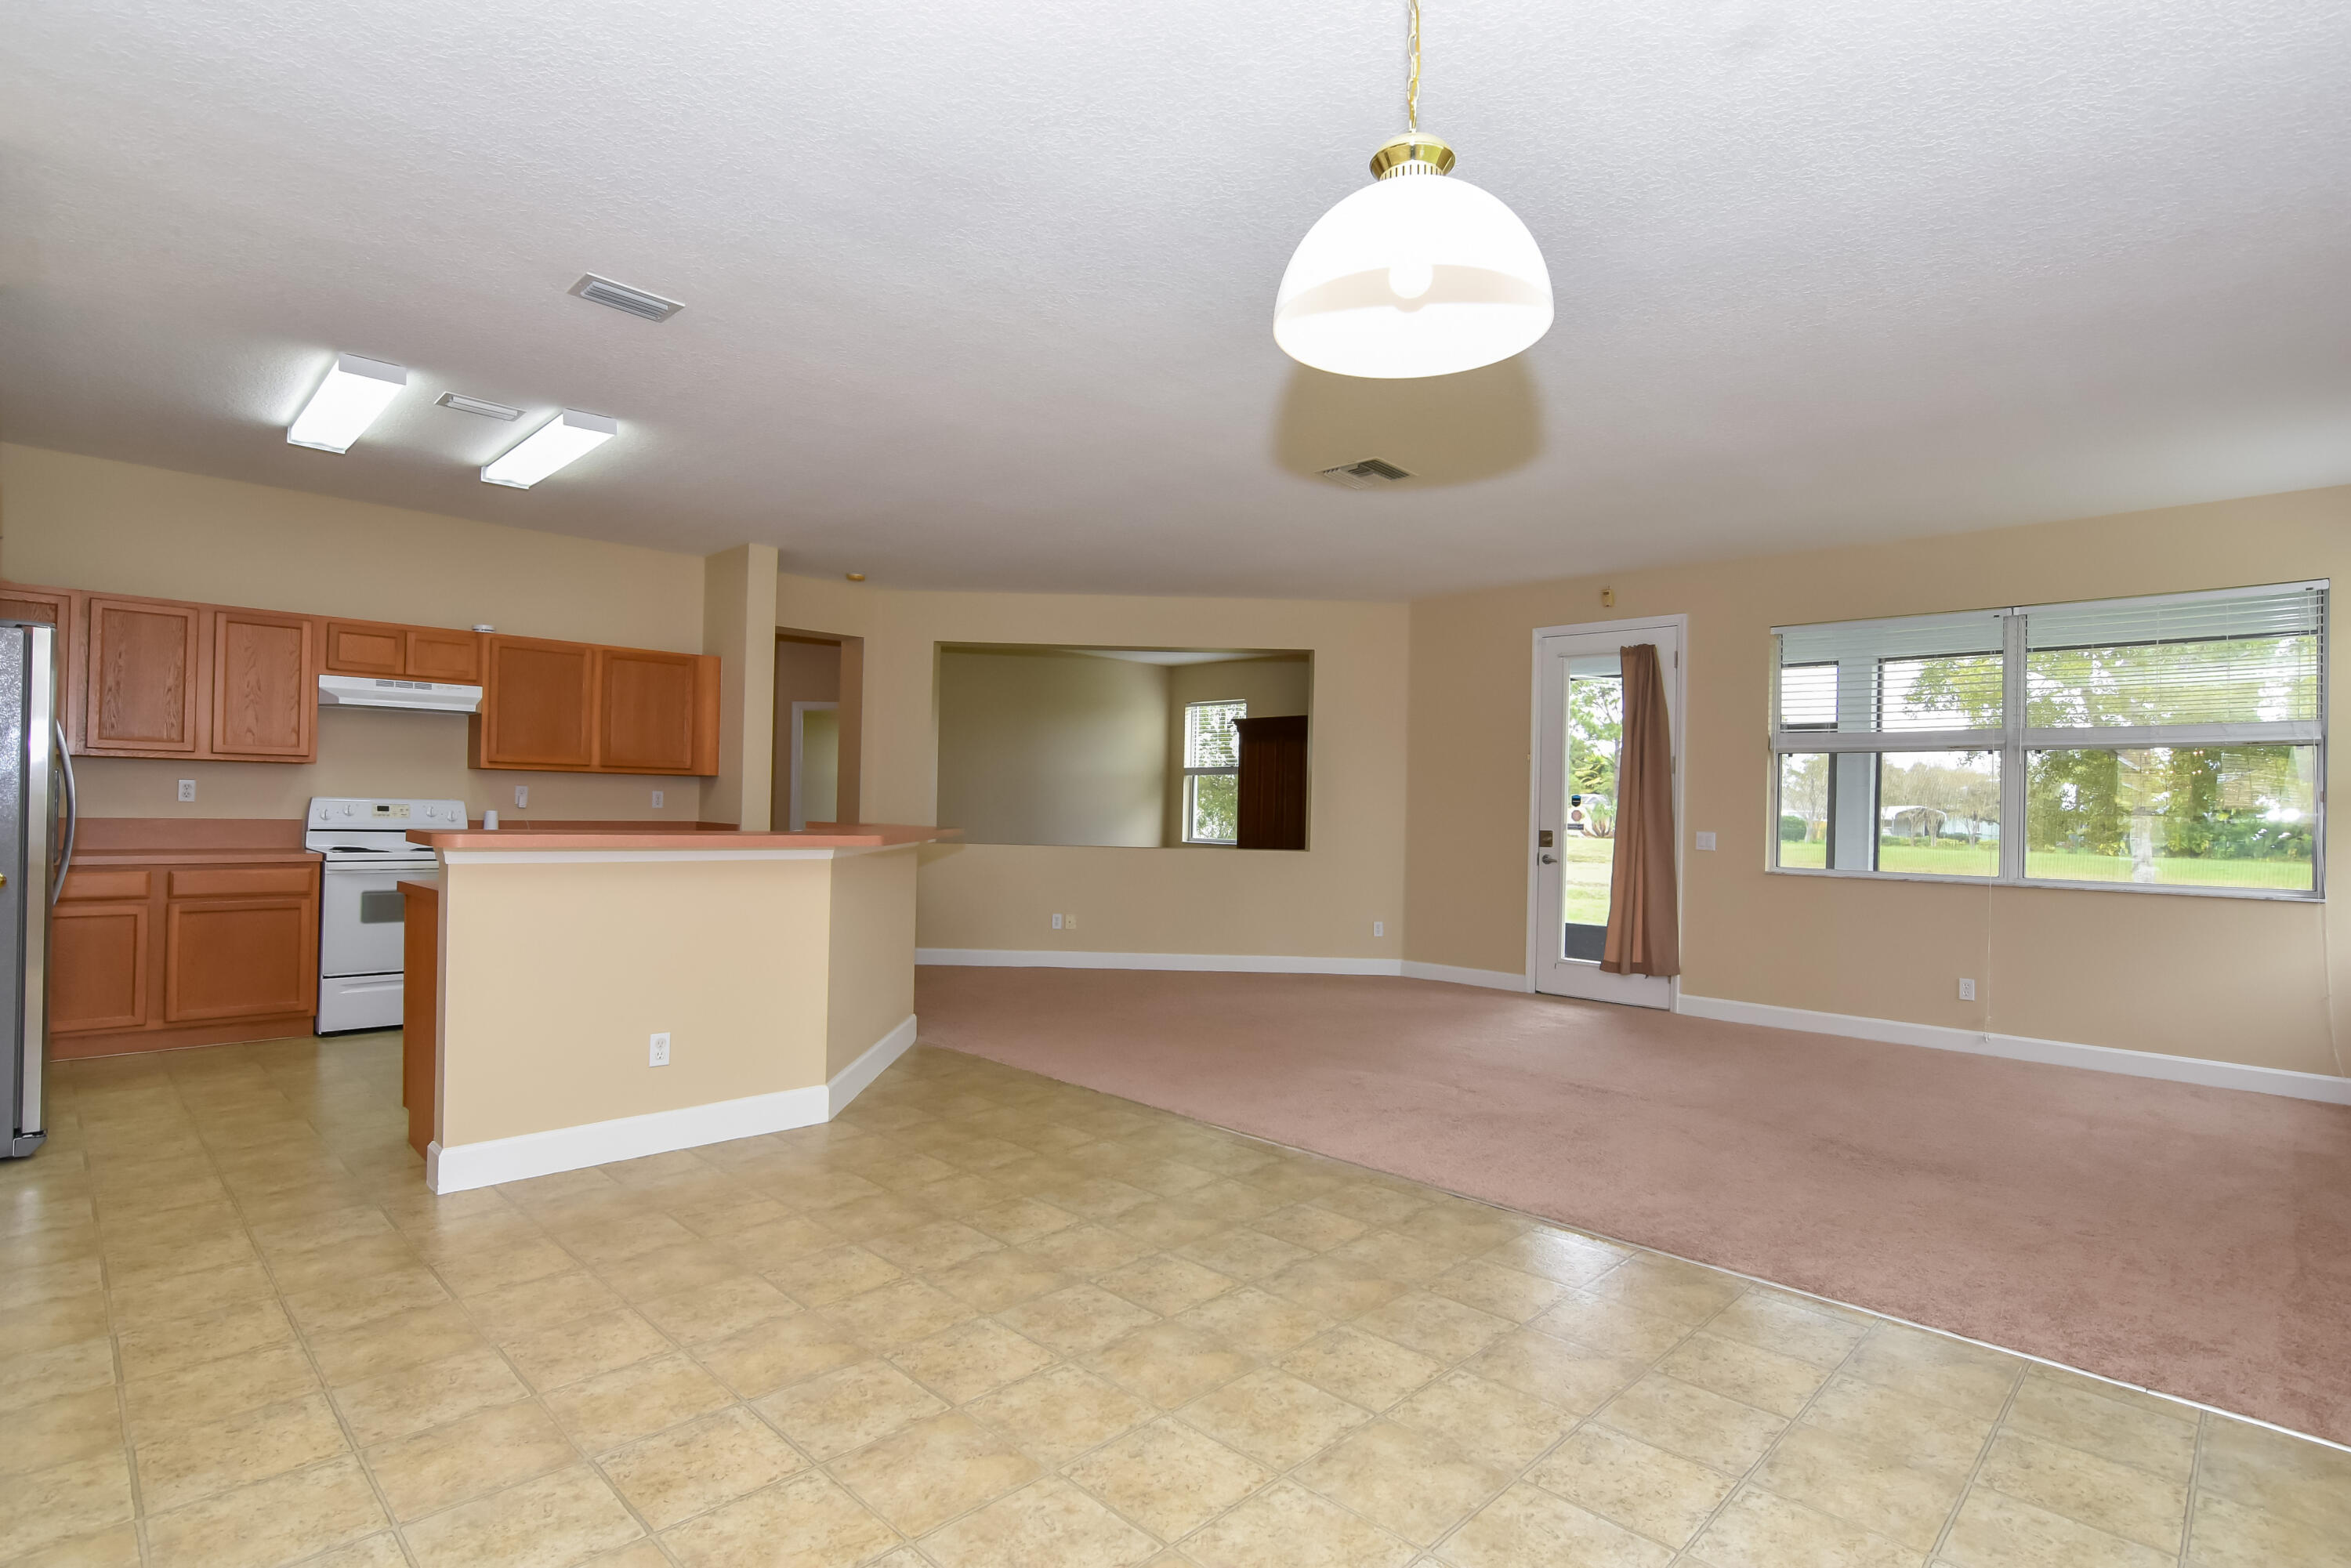 5915 Nw Brianna Court, Port Saint Lucie, FL 34986